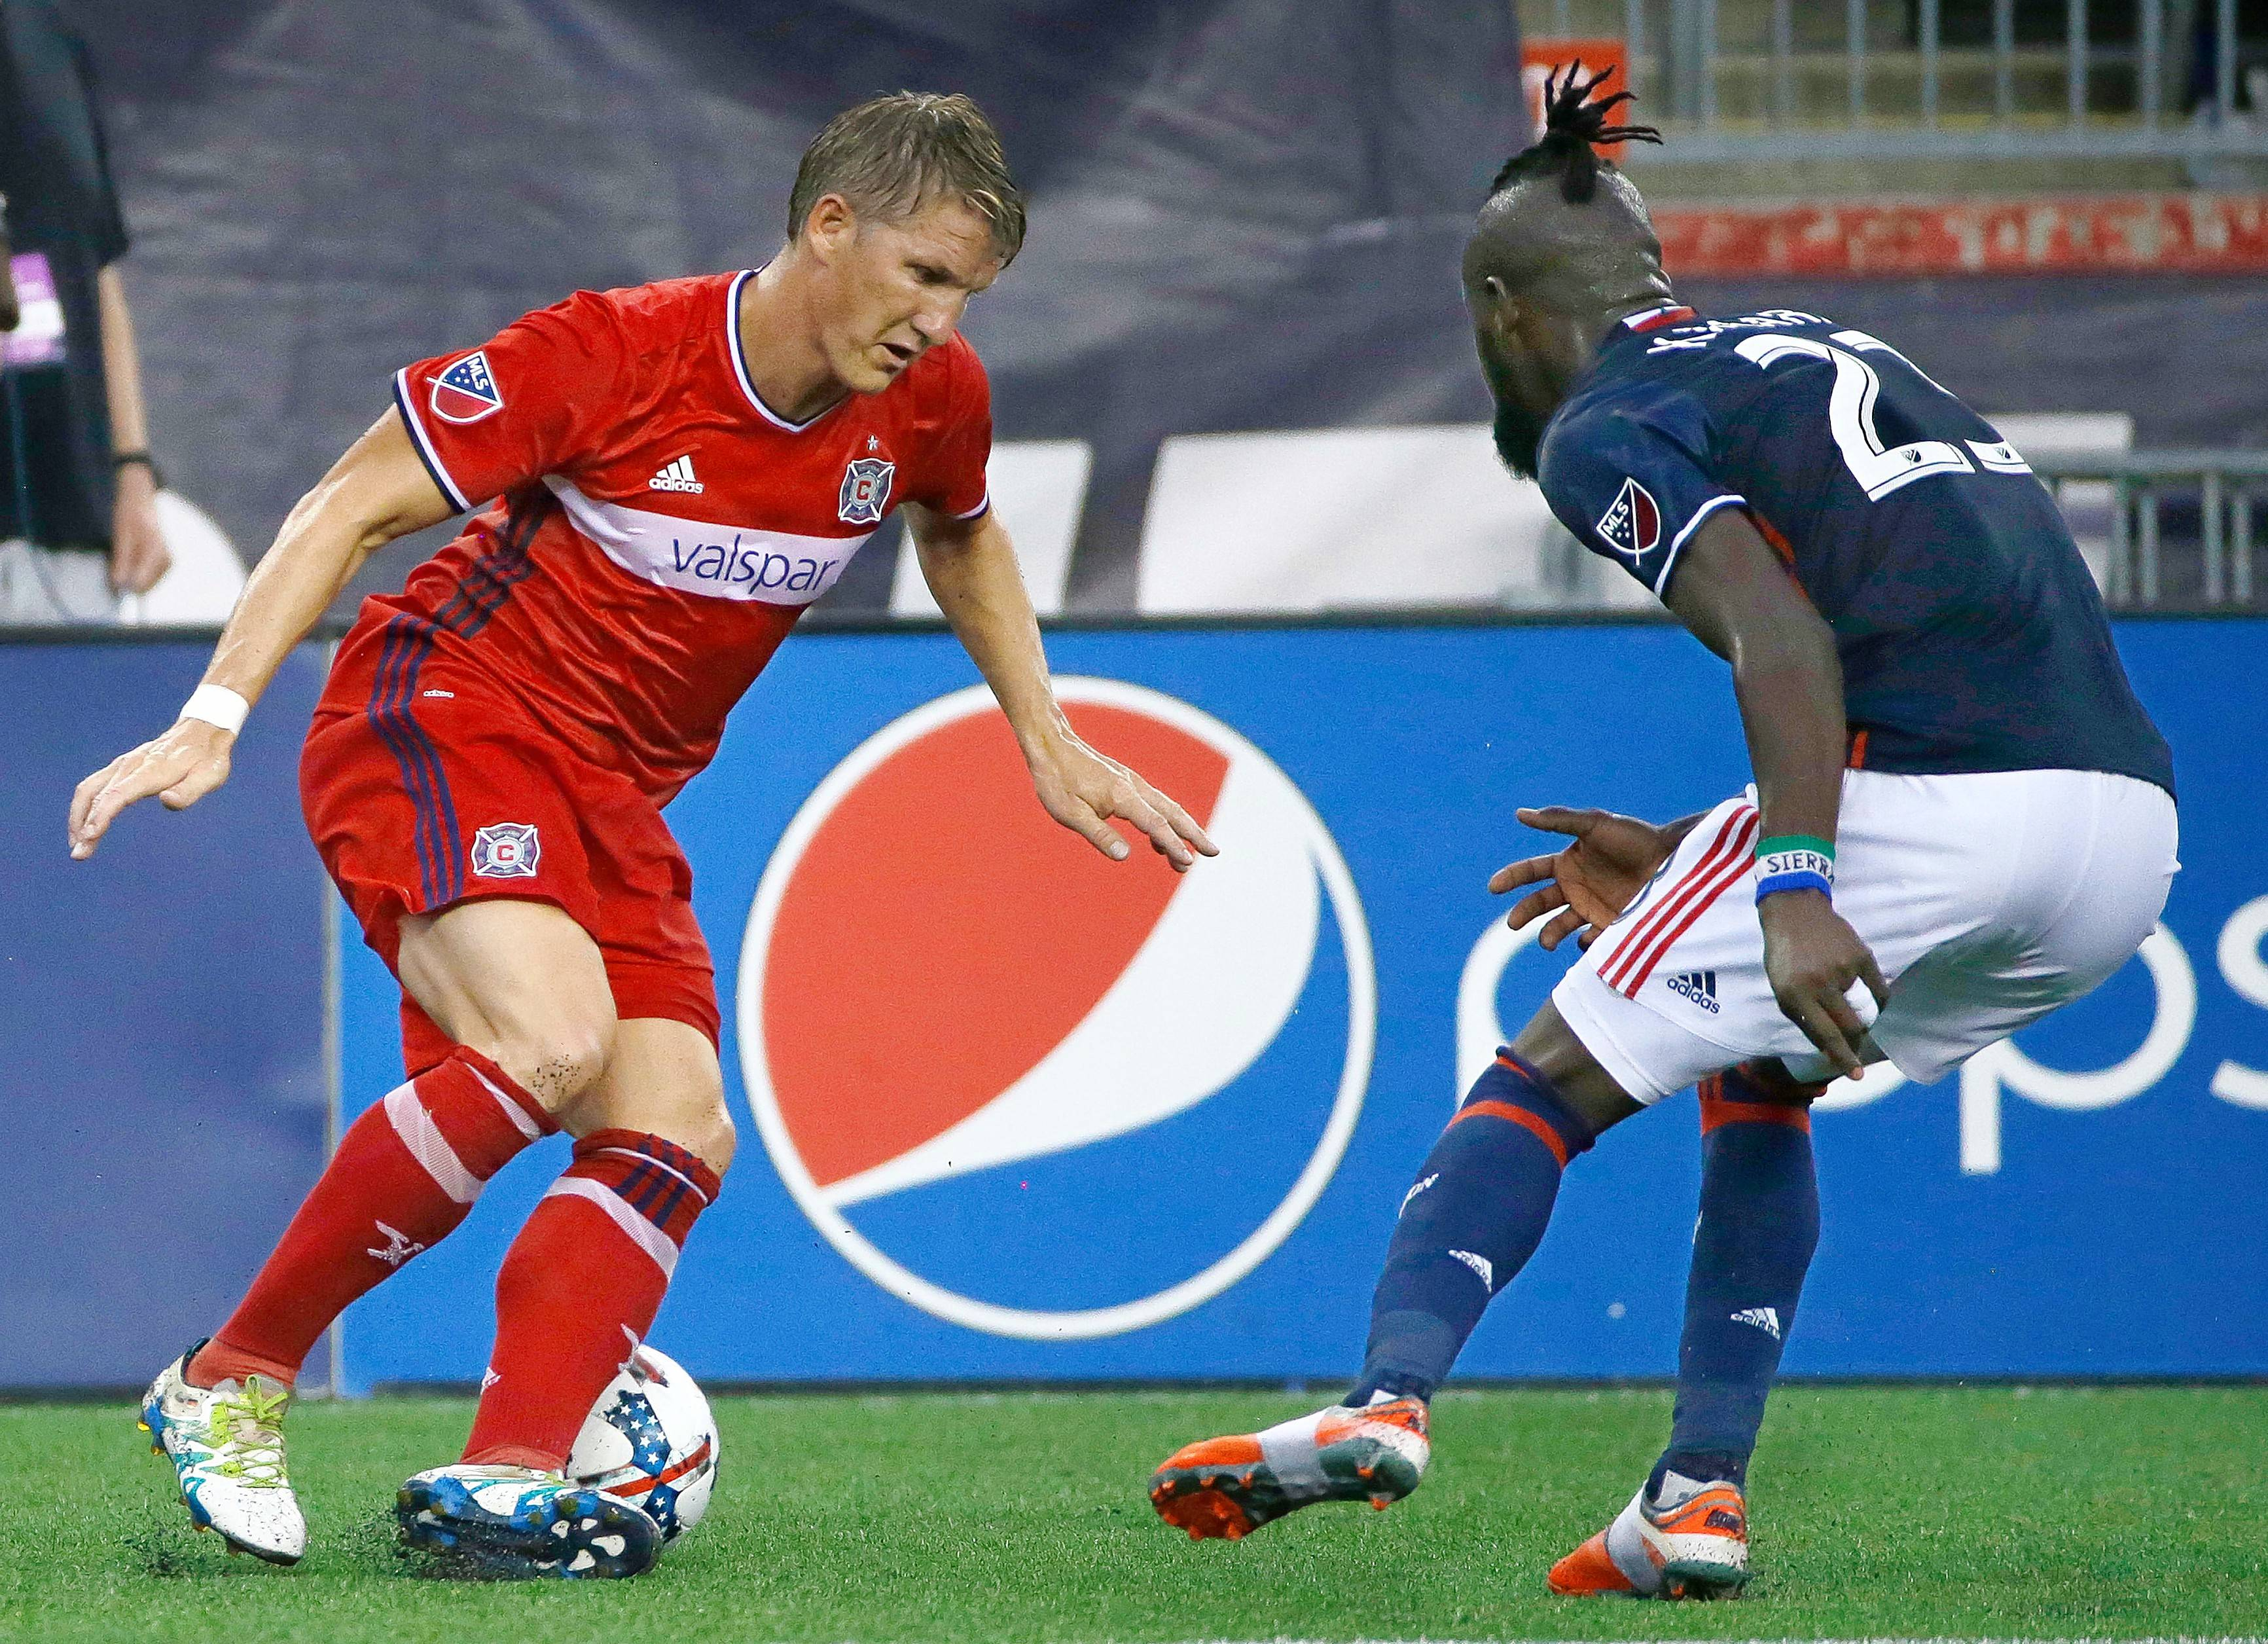 Chicago Fire midfielder Bastian Schweinsteiger (31), of Germany, is confronted with defensive pressure by New England Revolution forward Kei Kamara (23) during the first half of their MLS Soccer match Saturday, June 17, 2017, in Foxborough, Mass. The Fire defeated the Revolution 2-1.